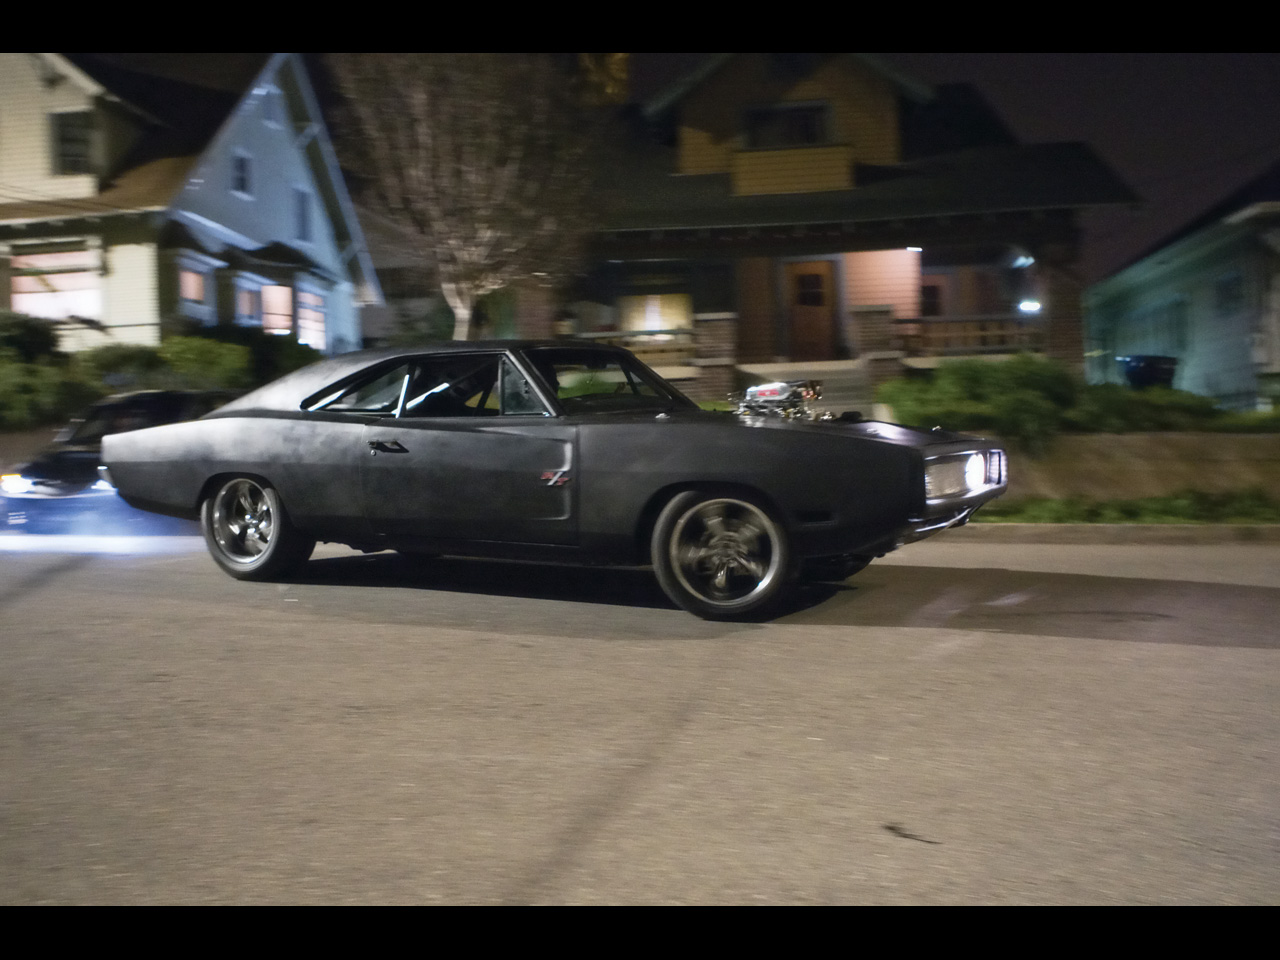 Fast Furious Movie Cars   Dodge Charger   1280x960   Wallpaper 1280x960